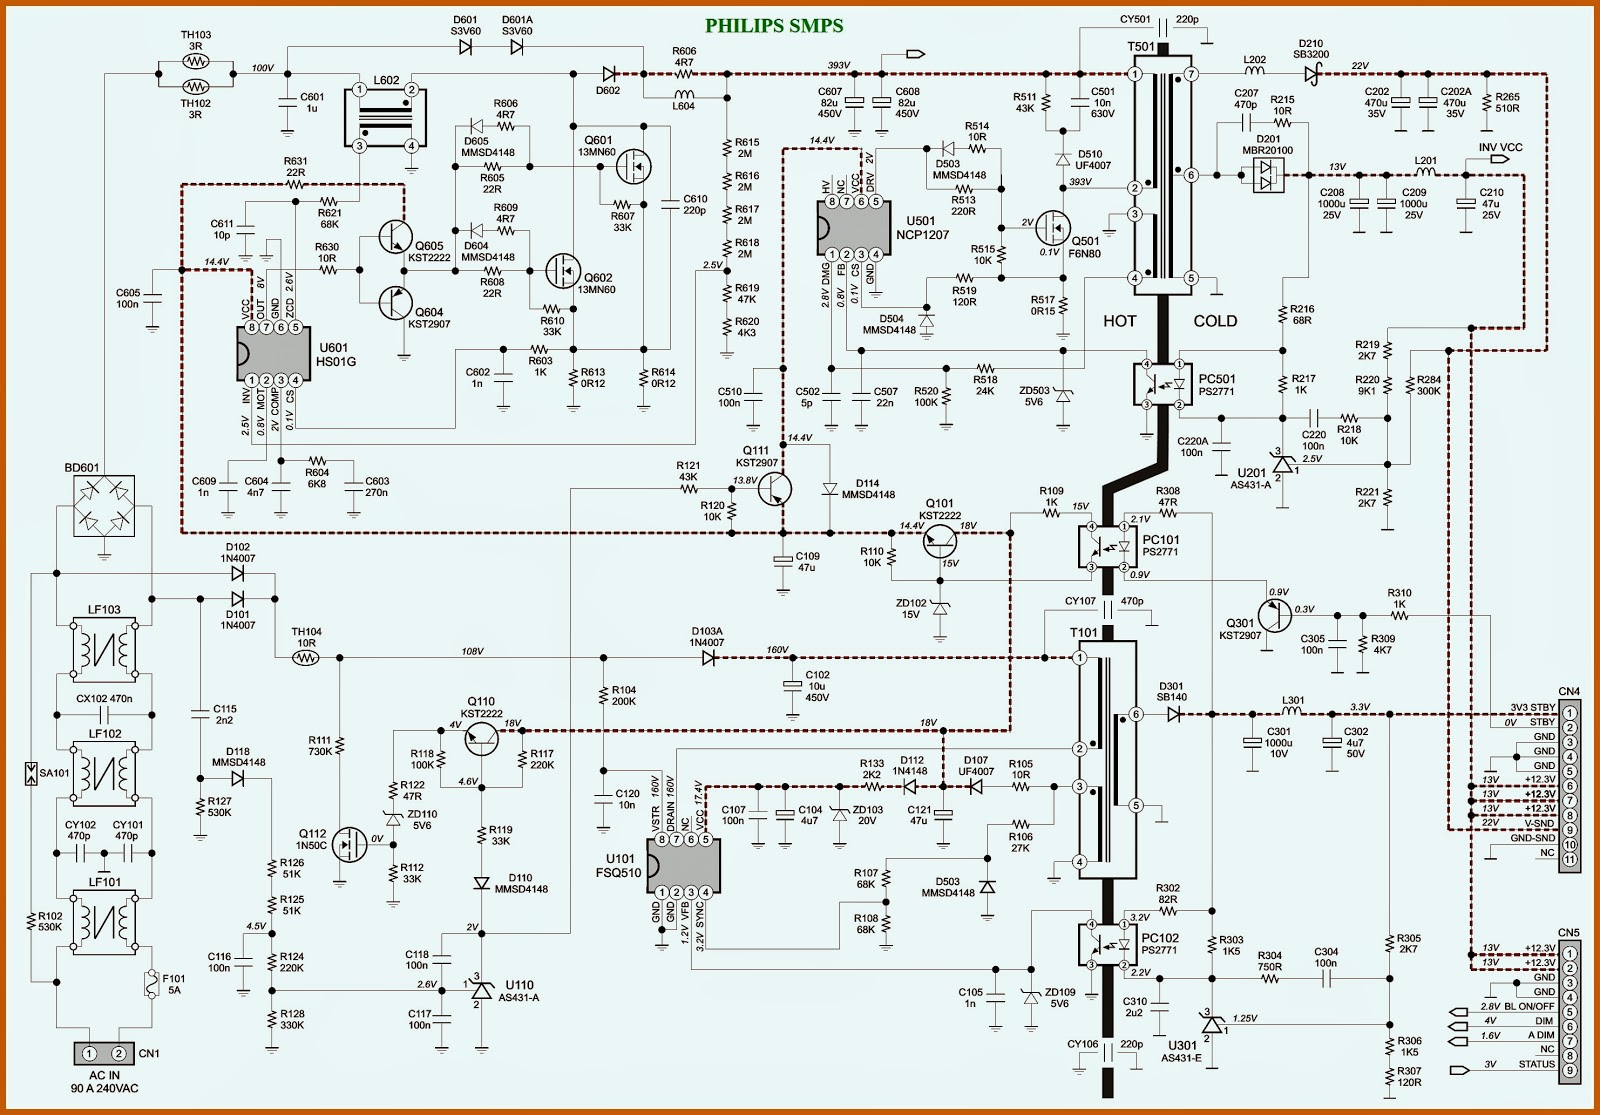 samsung lcd tv diagram schema wiring diagrams surround sound speaker placement diagram 55 samsung tv wiring diagram [ 1600 x 1115 Pixel ]